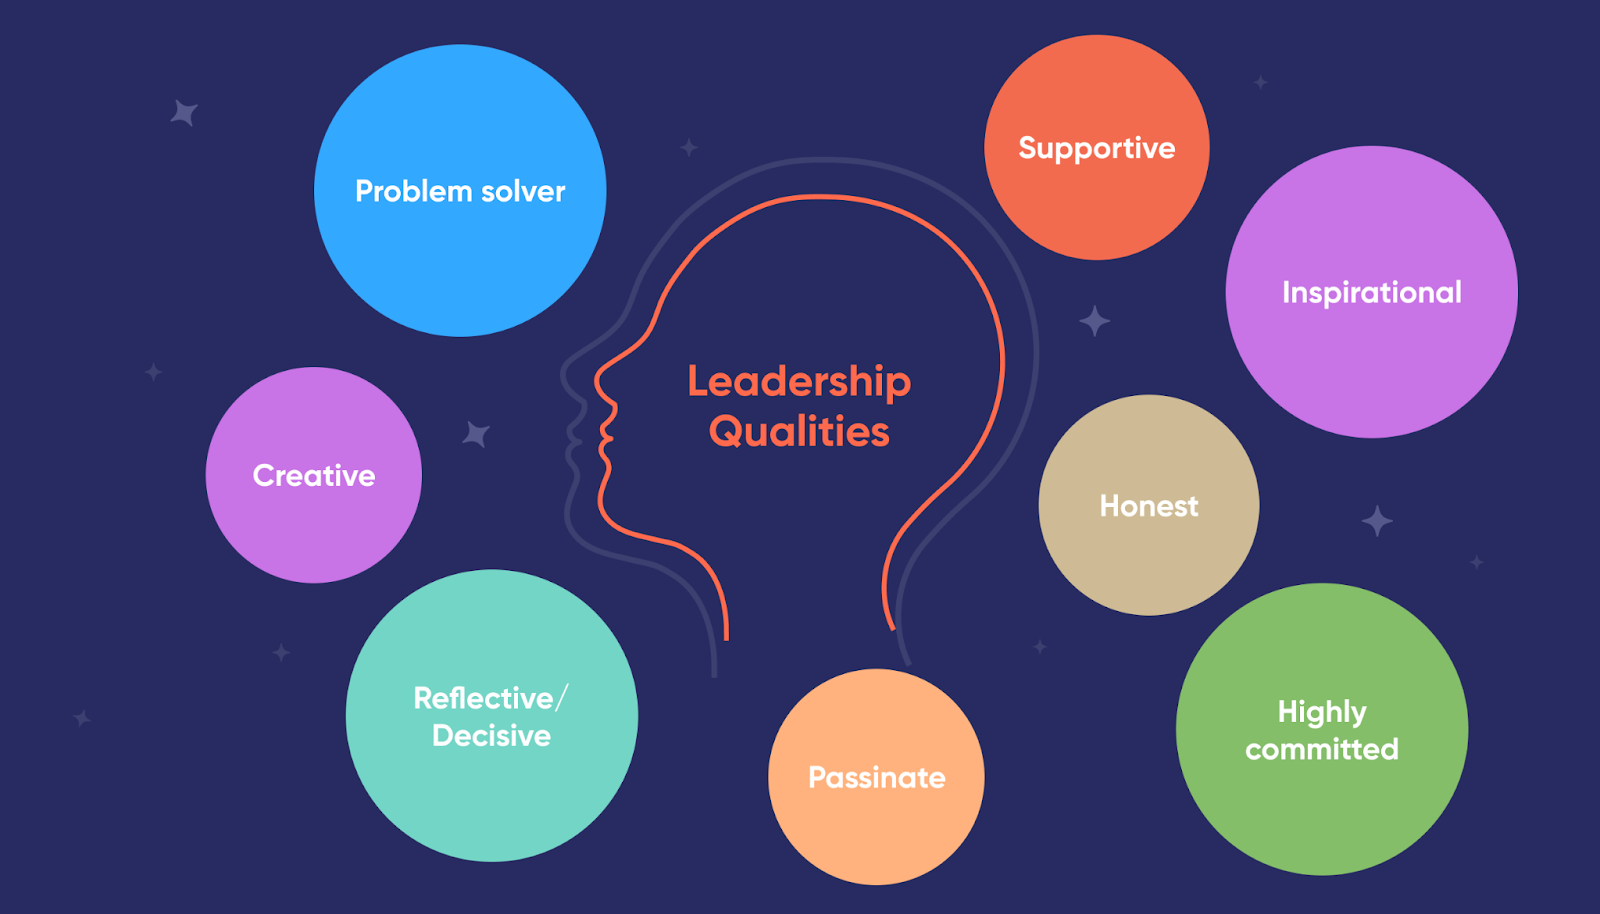 graphic-qualities-we-should-look-for-in-leadership-full-potential